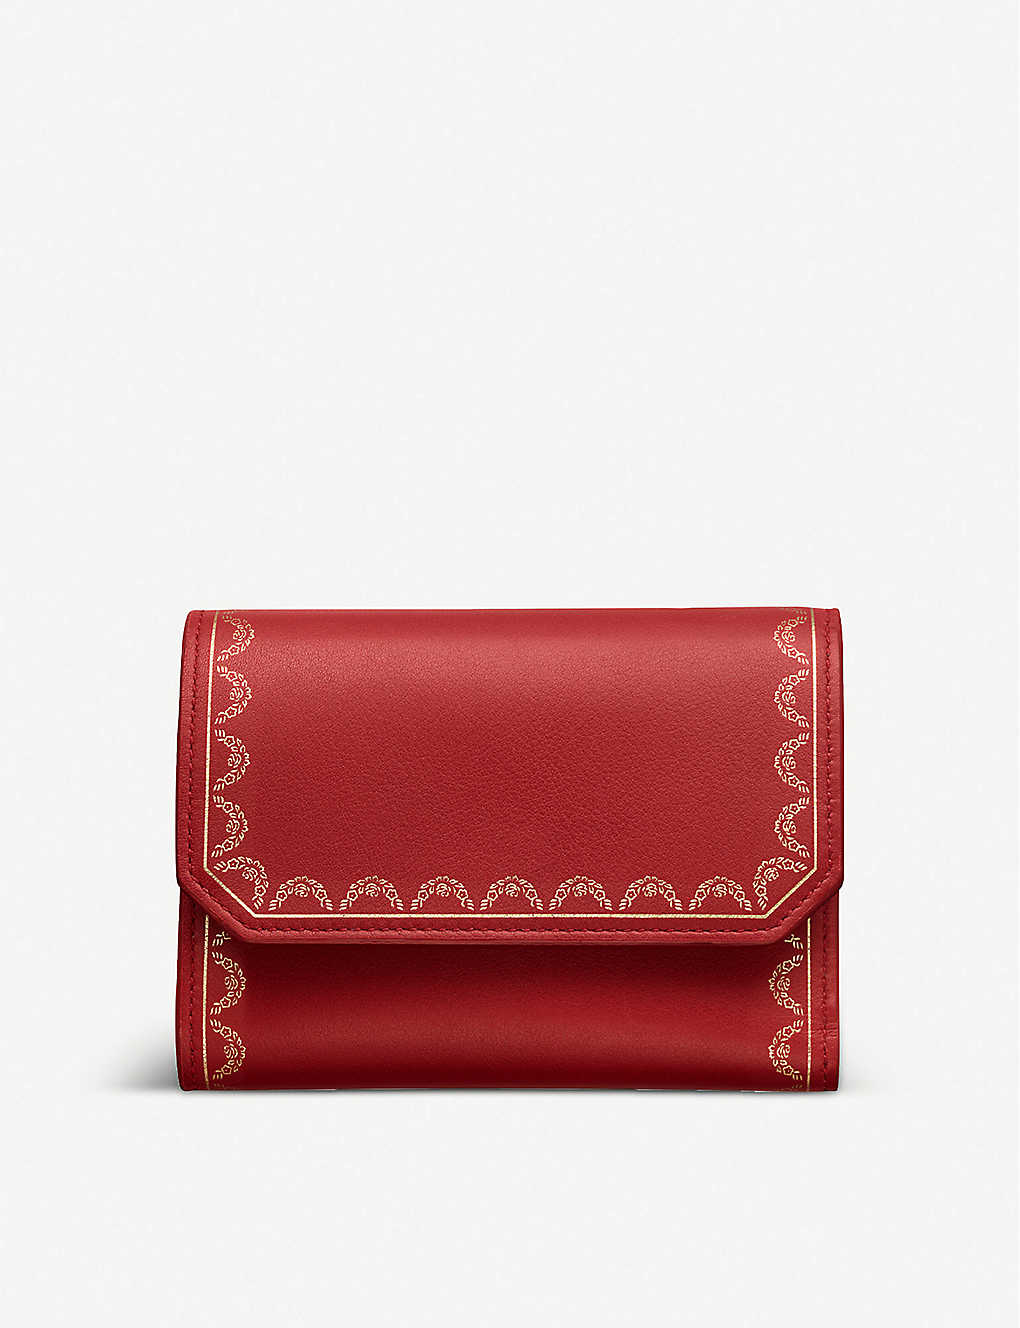 CARTIER: Guirlande de Cartier small leather wallet